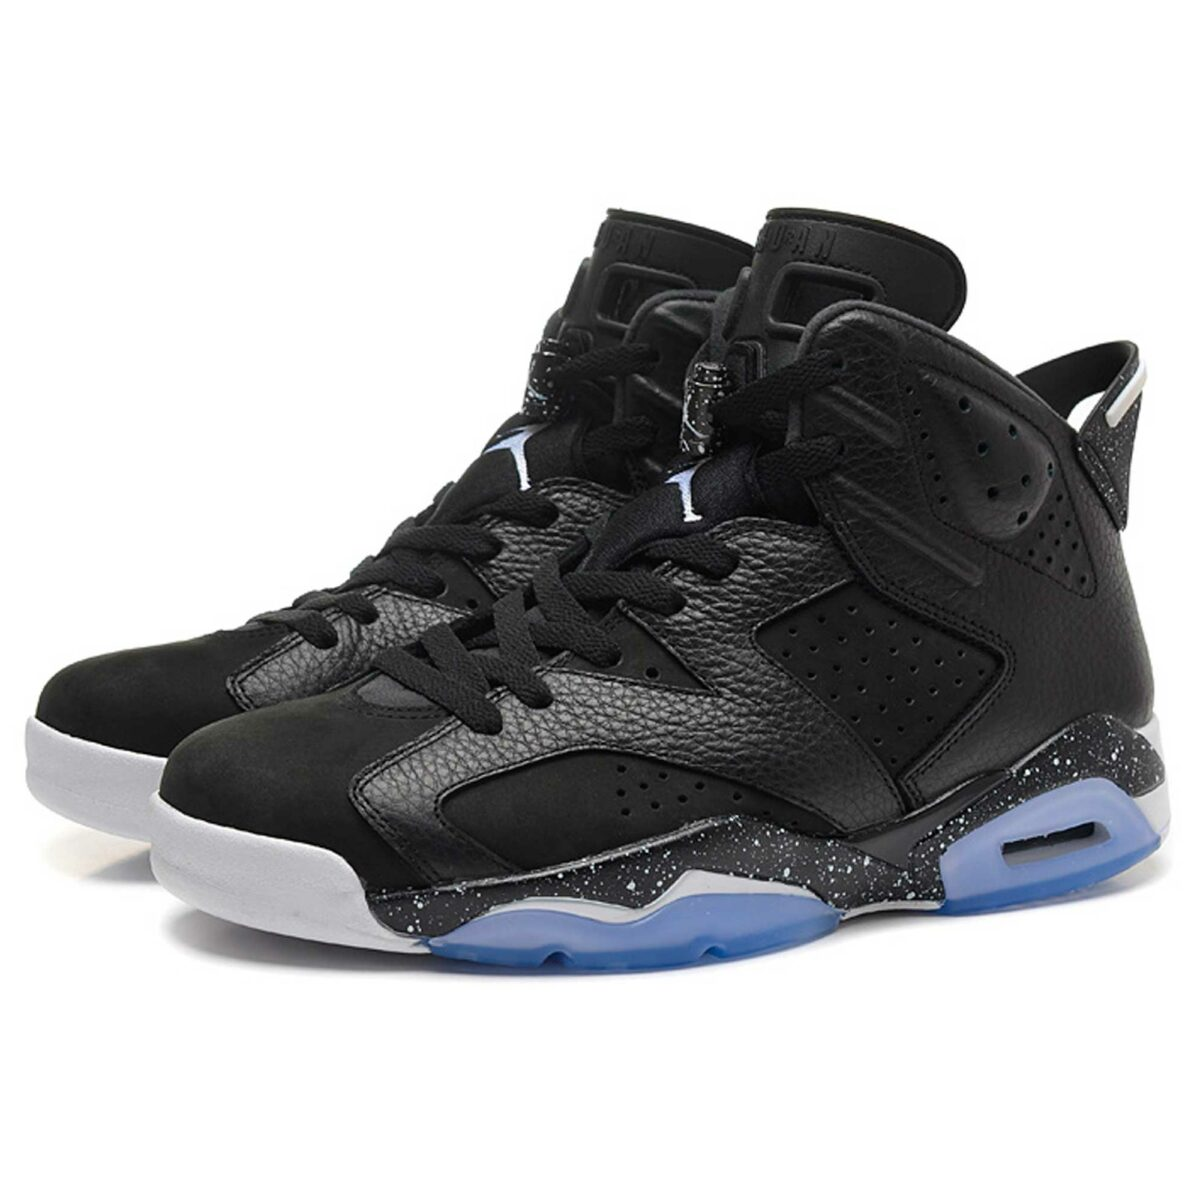 nike air jordan retro 6 UNC black university blue 384664-006 купить